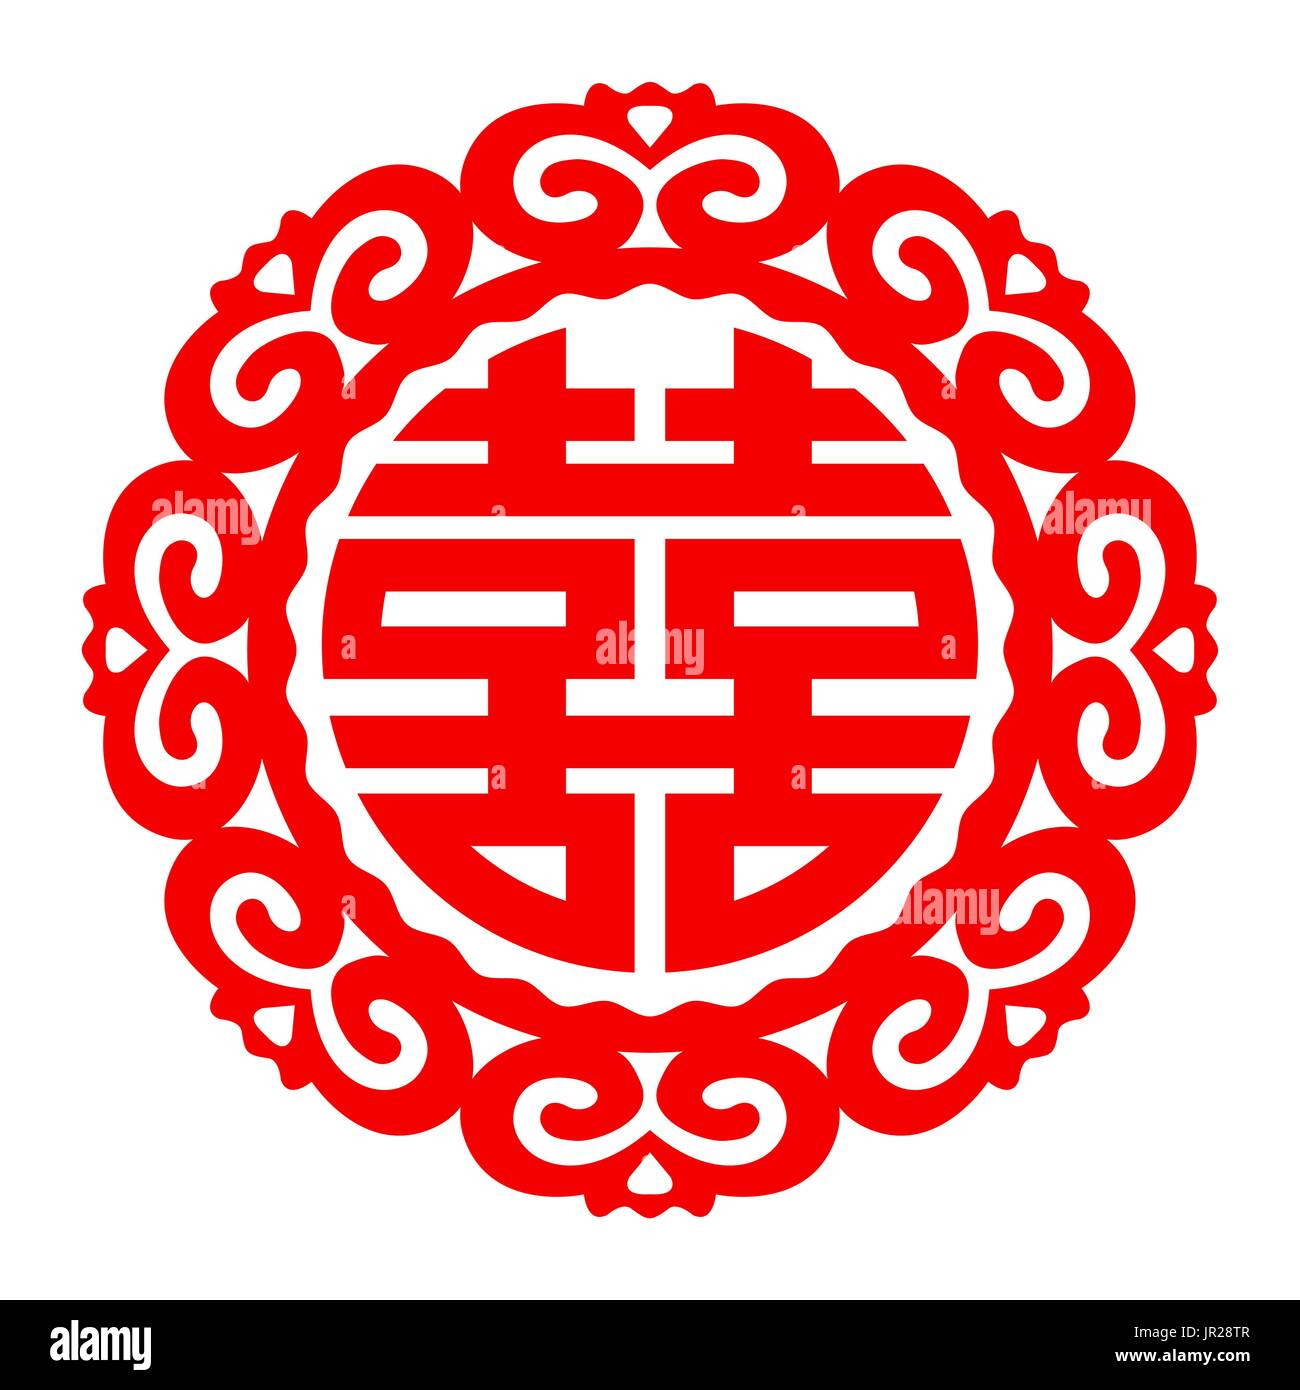 Vector chinese double happiness symbol stock vector art vector chinese double happiness symbol biocorpaavc Images